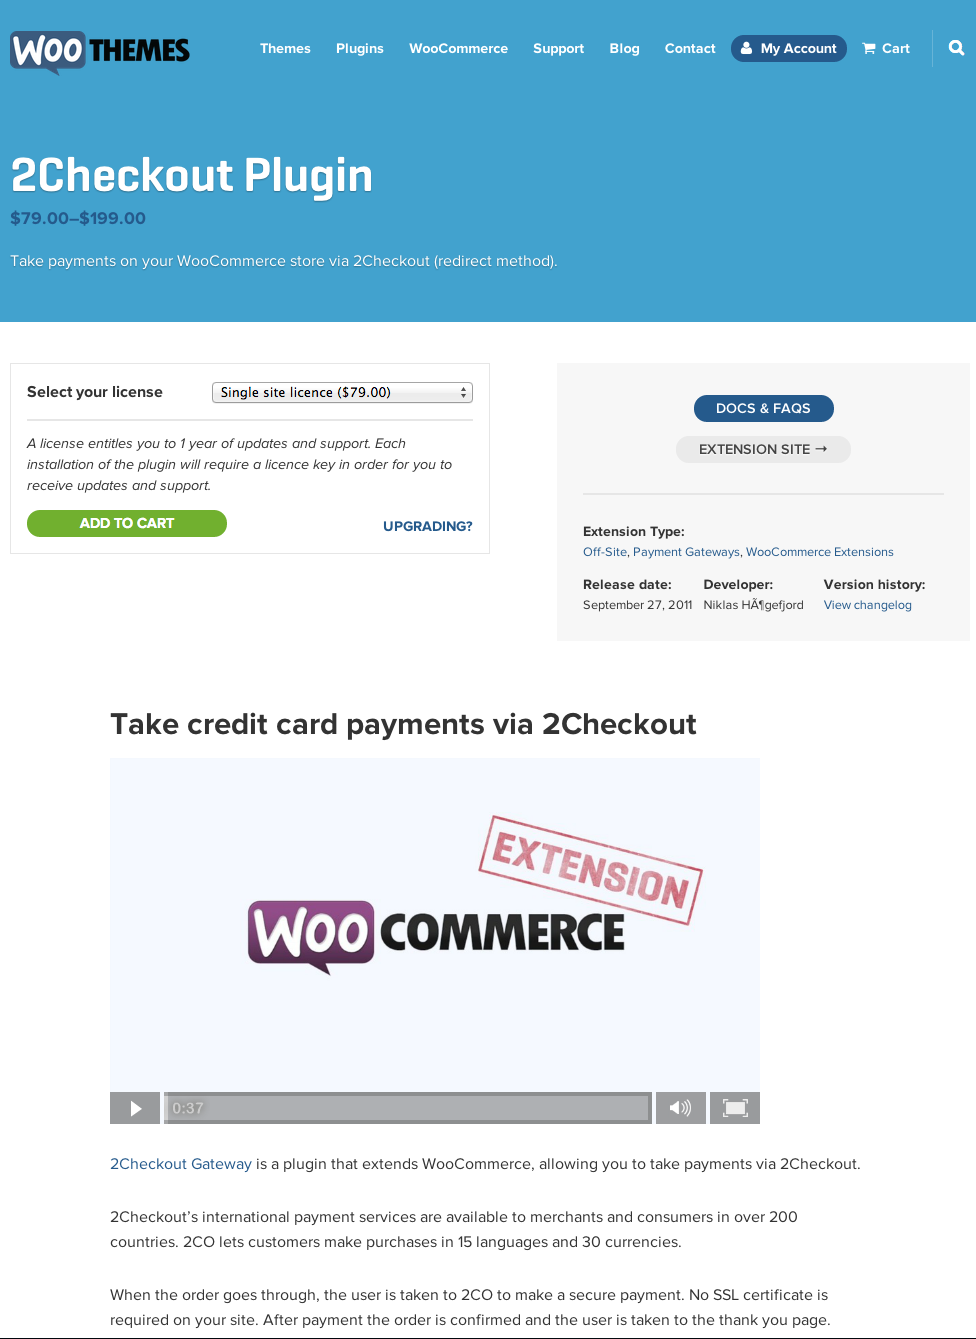 WooCommerce-2Checkout-Form-Payment-Gateway-Extension